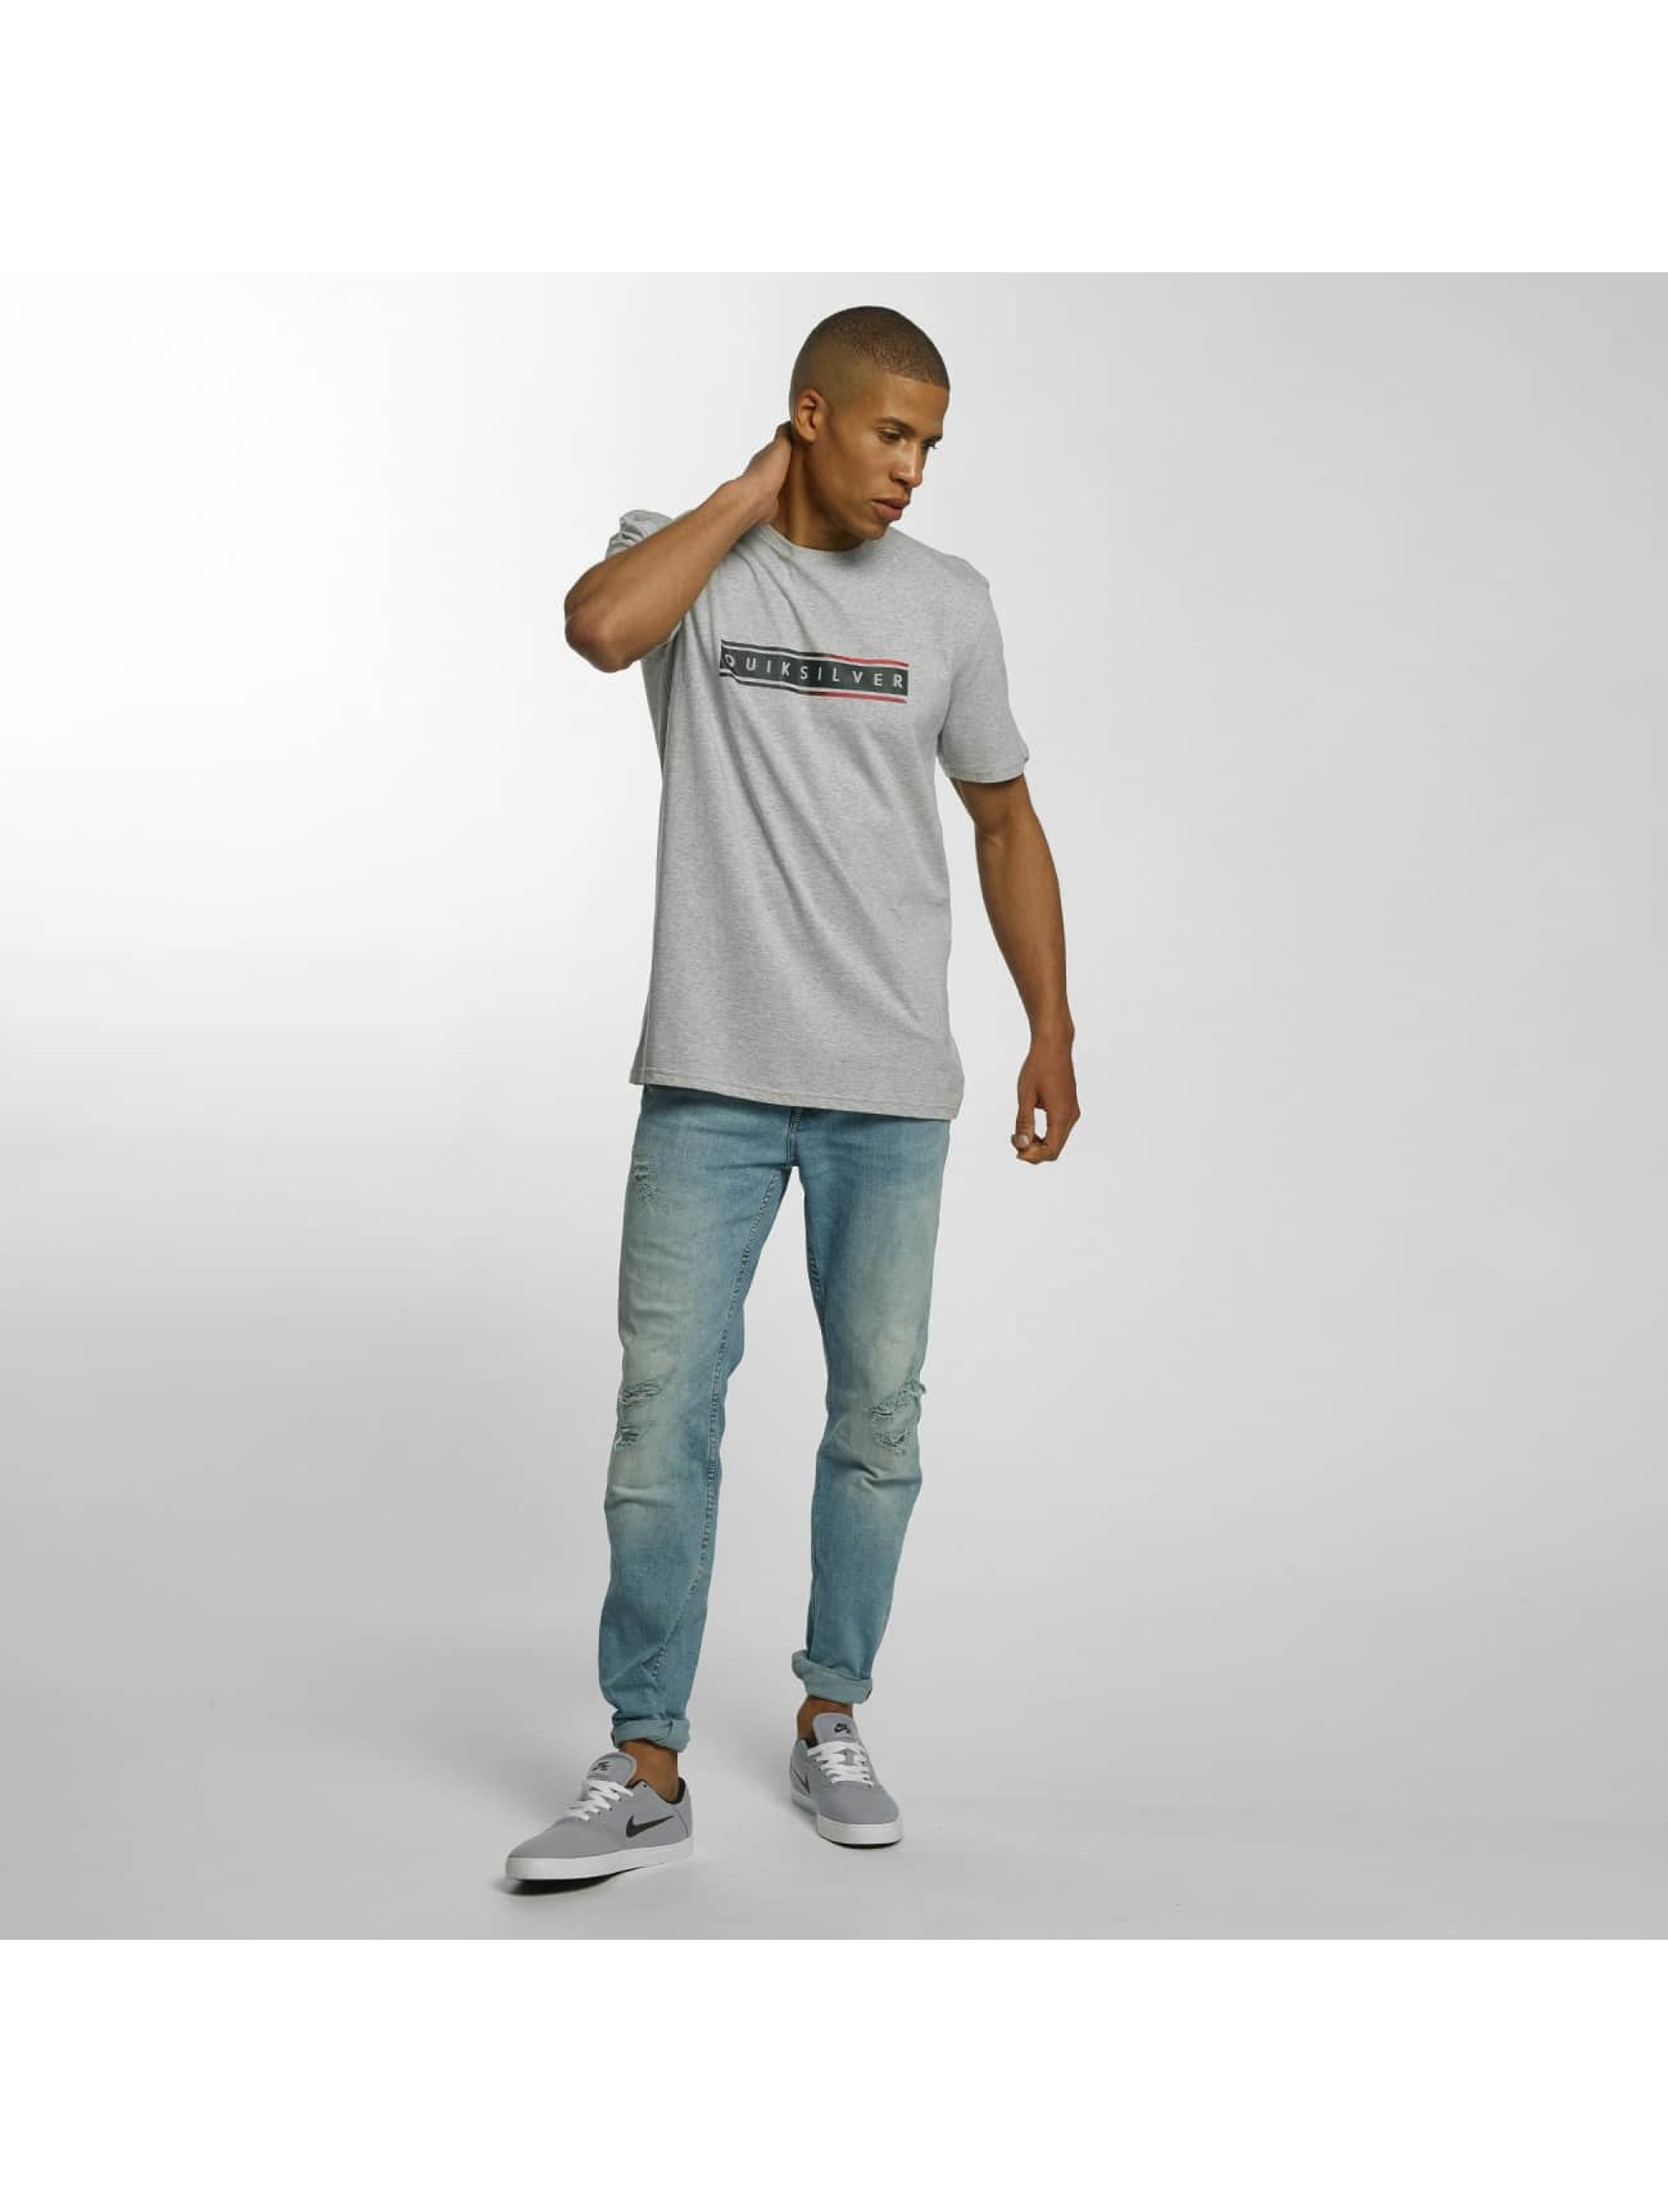 Quiksilver T-Shirt Classic Daily Surf gray